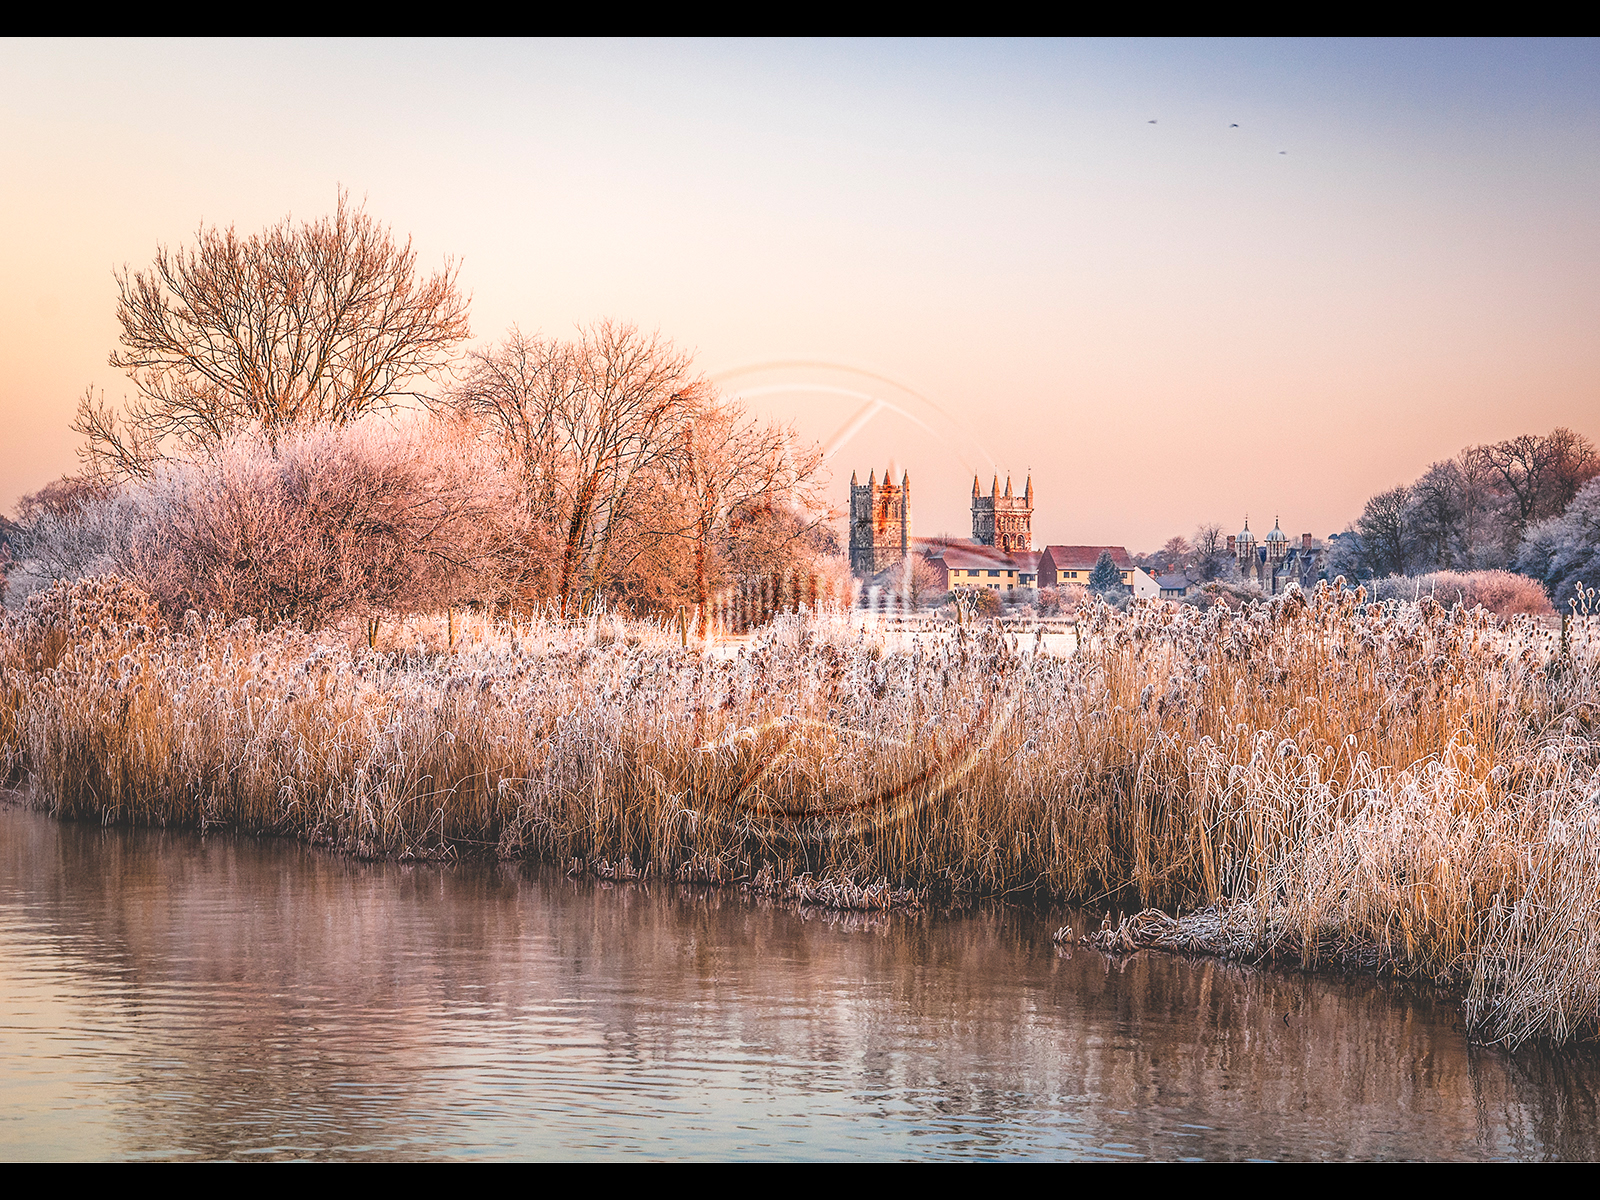 Minster_and_Stour_in_Winter by Roger_Hol